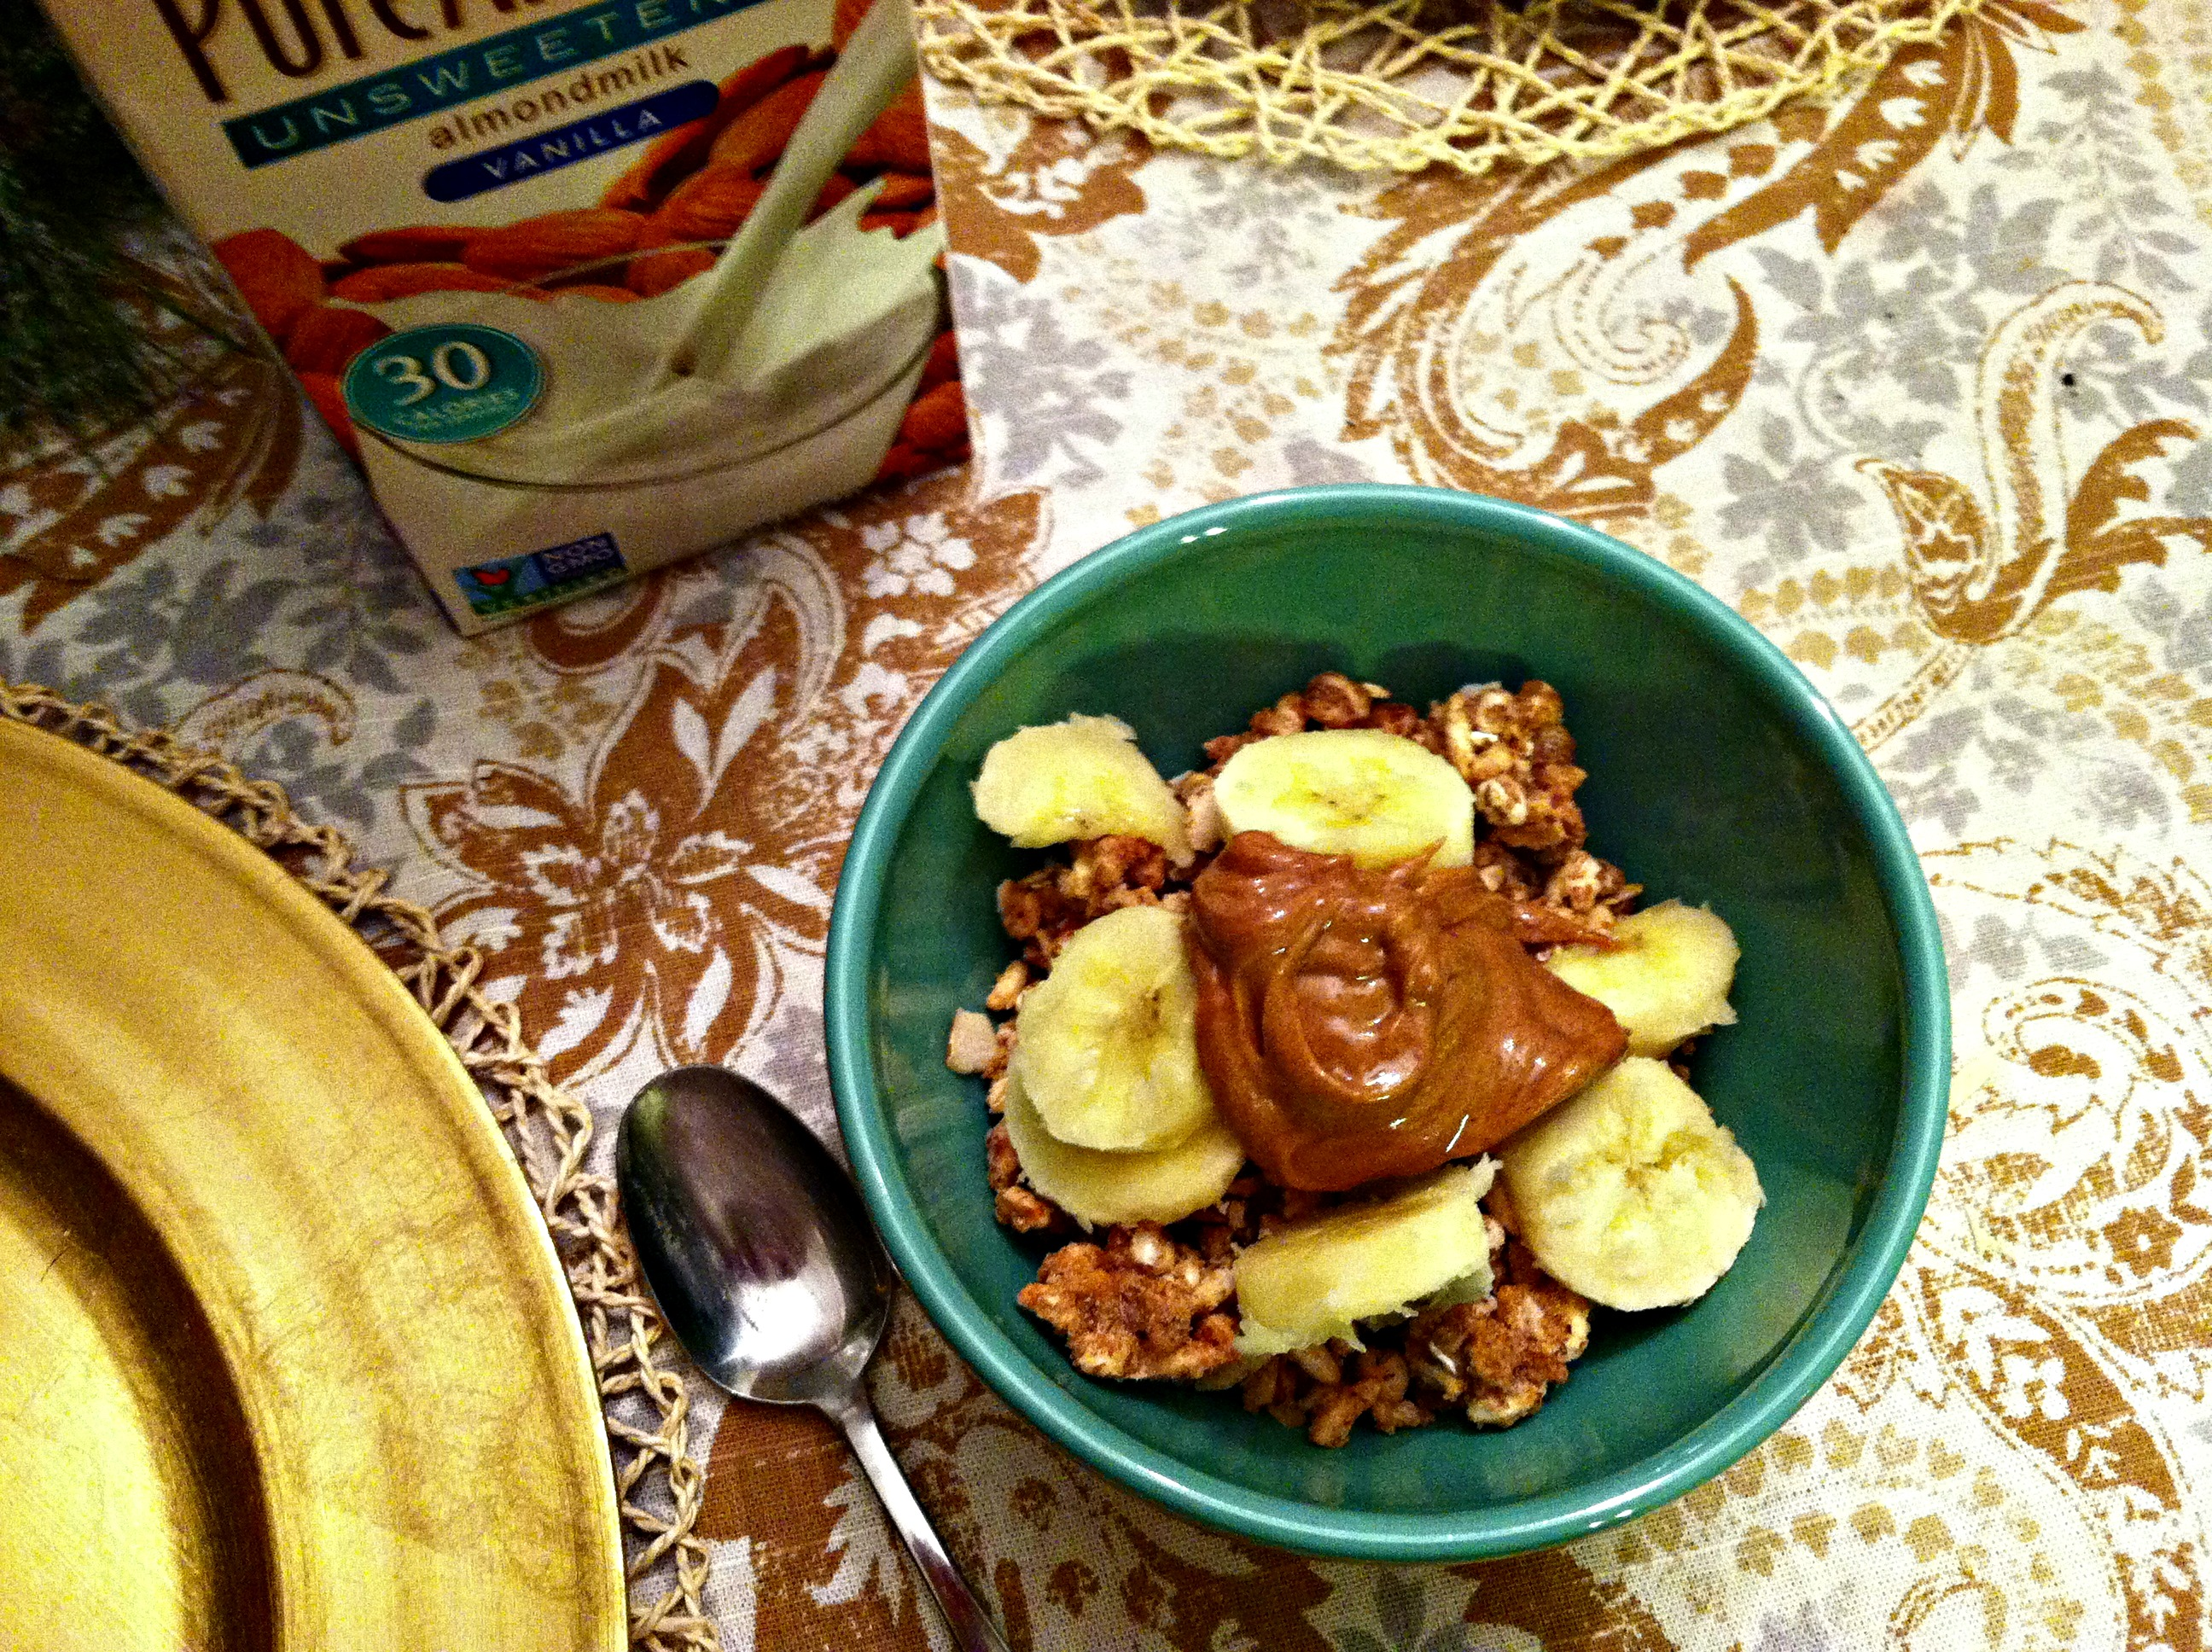 Cereal and PB